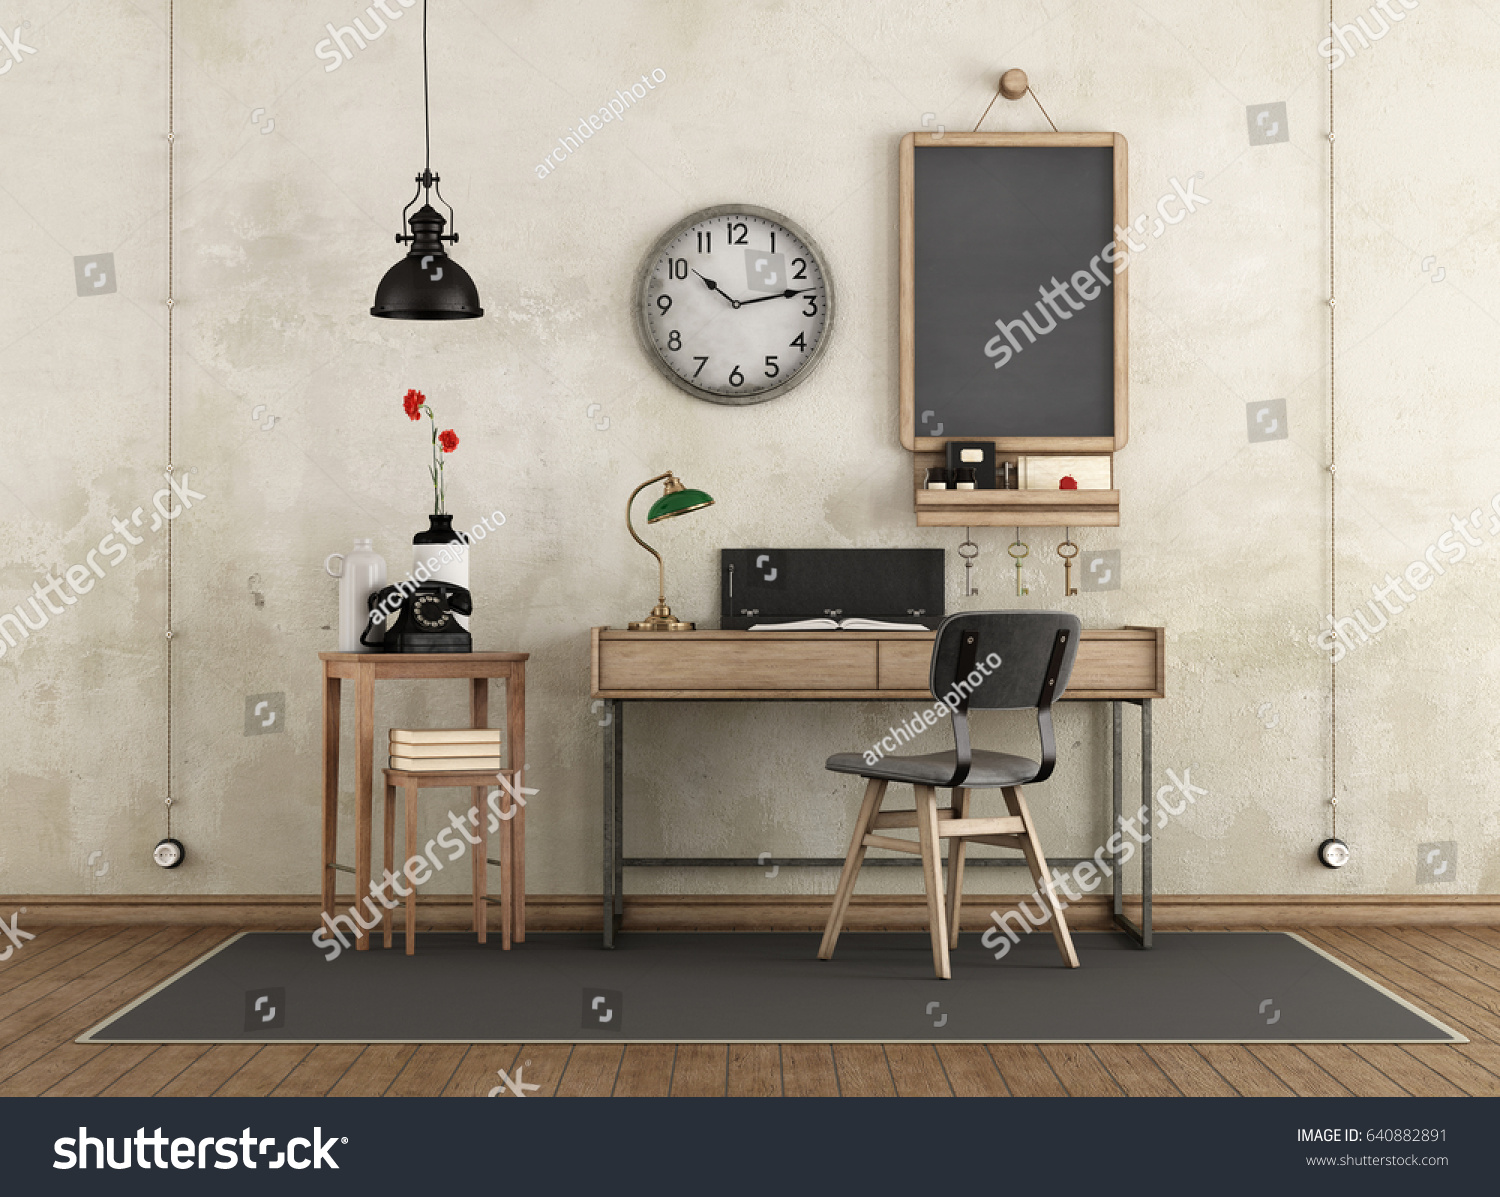 home workspace in industrial style with desk and retro objects 3d rendering